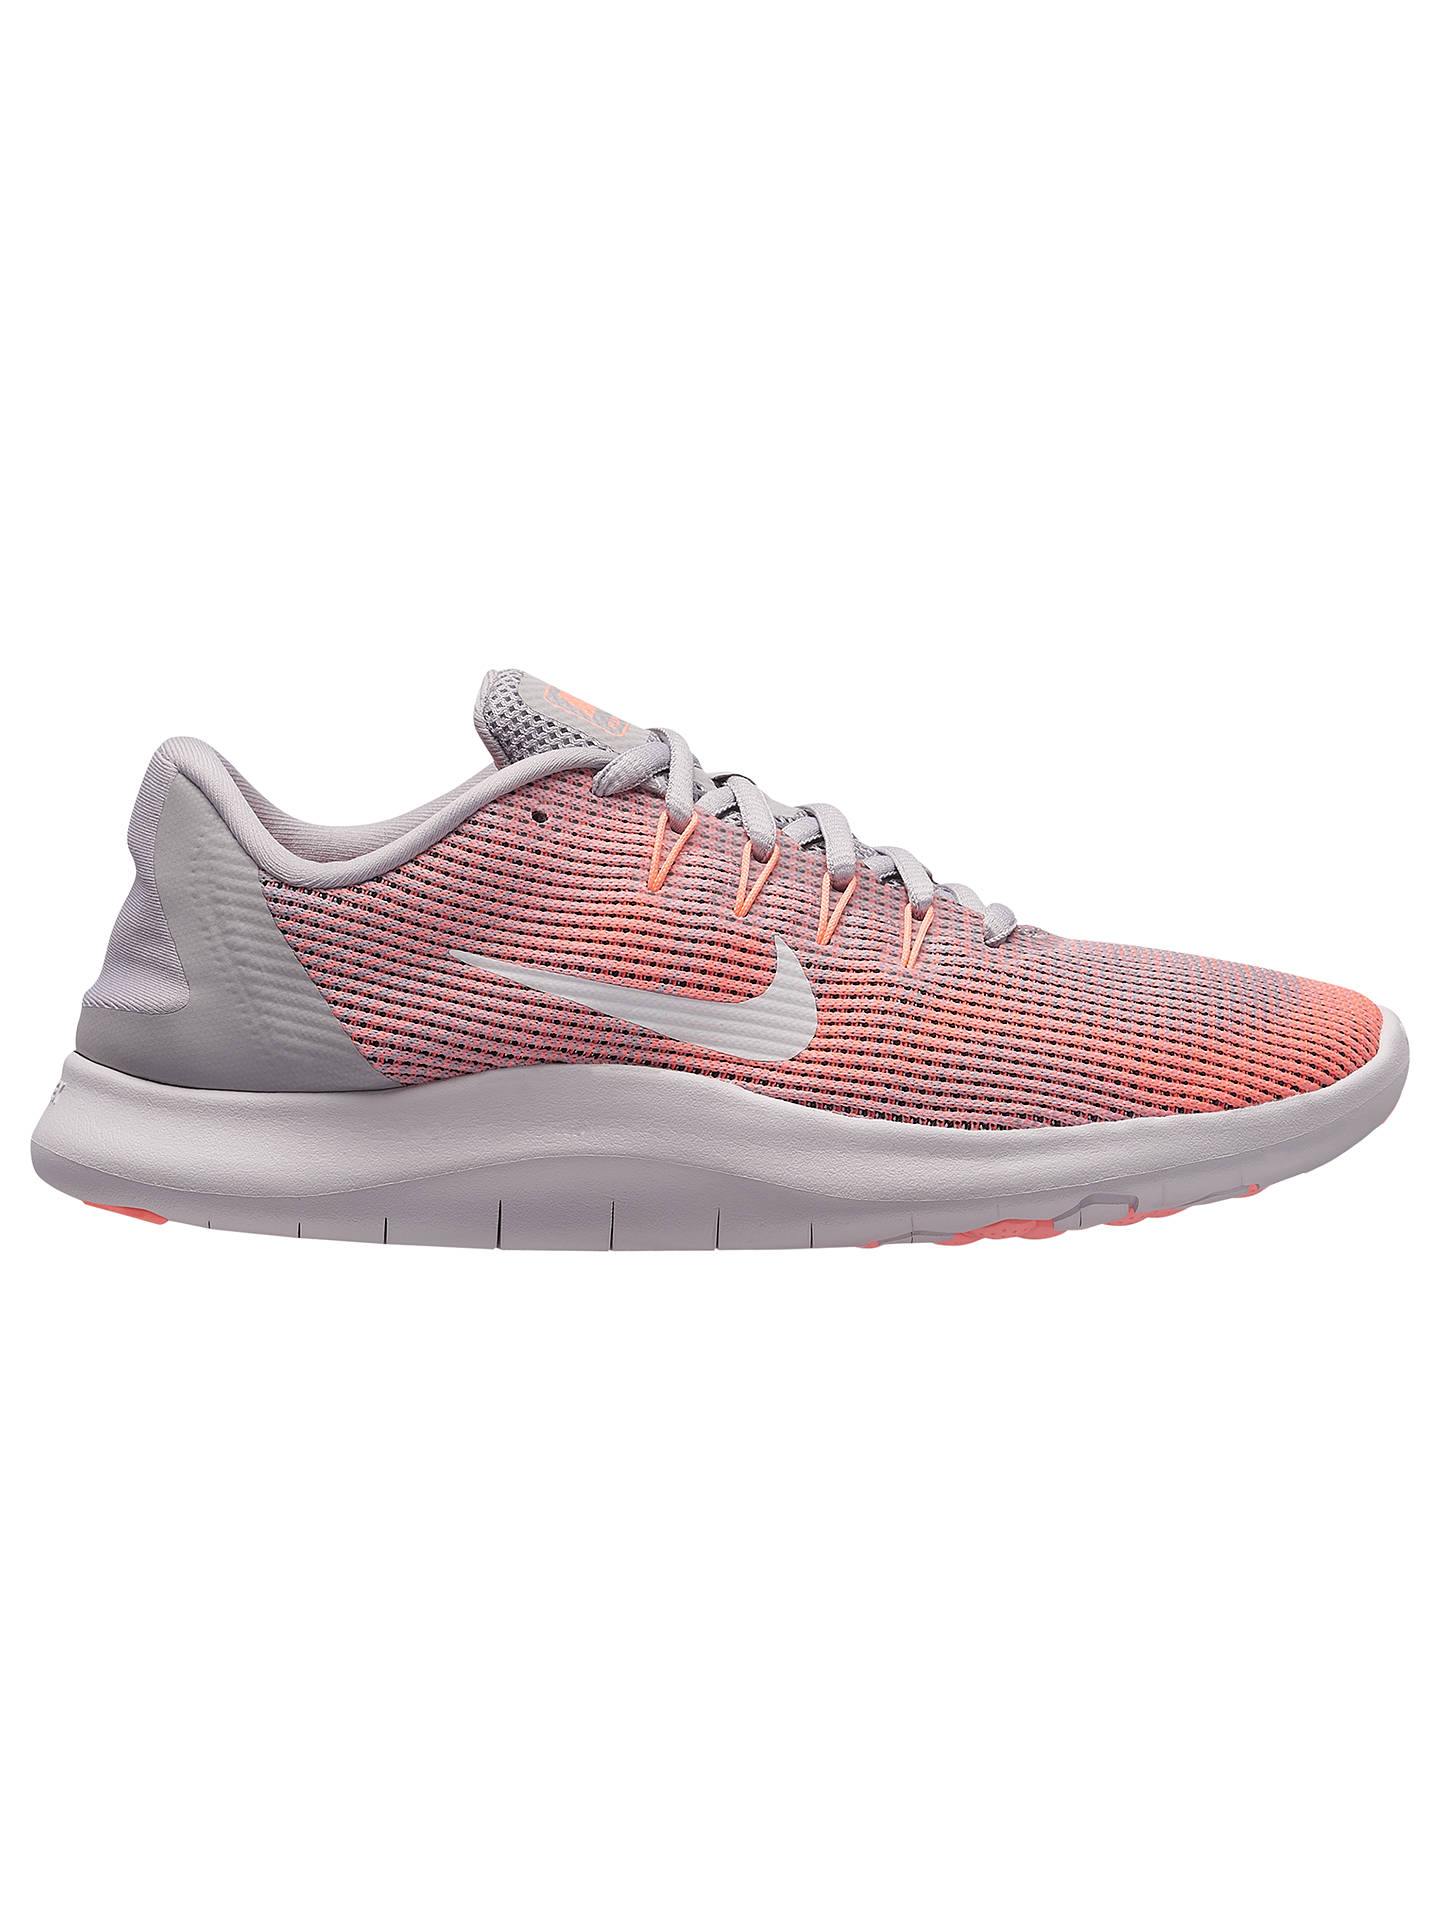 BuyNike Flex RN 2018 Women s Running Shoe bf6e2385e